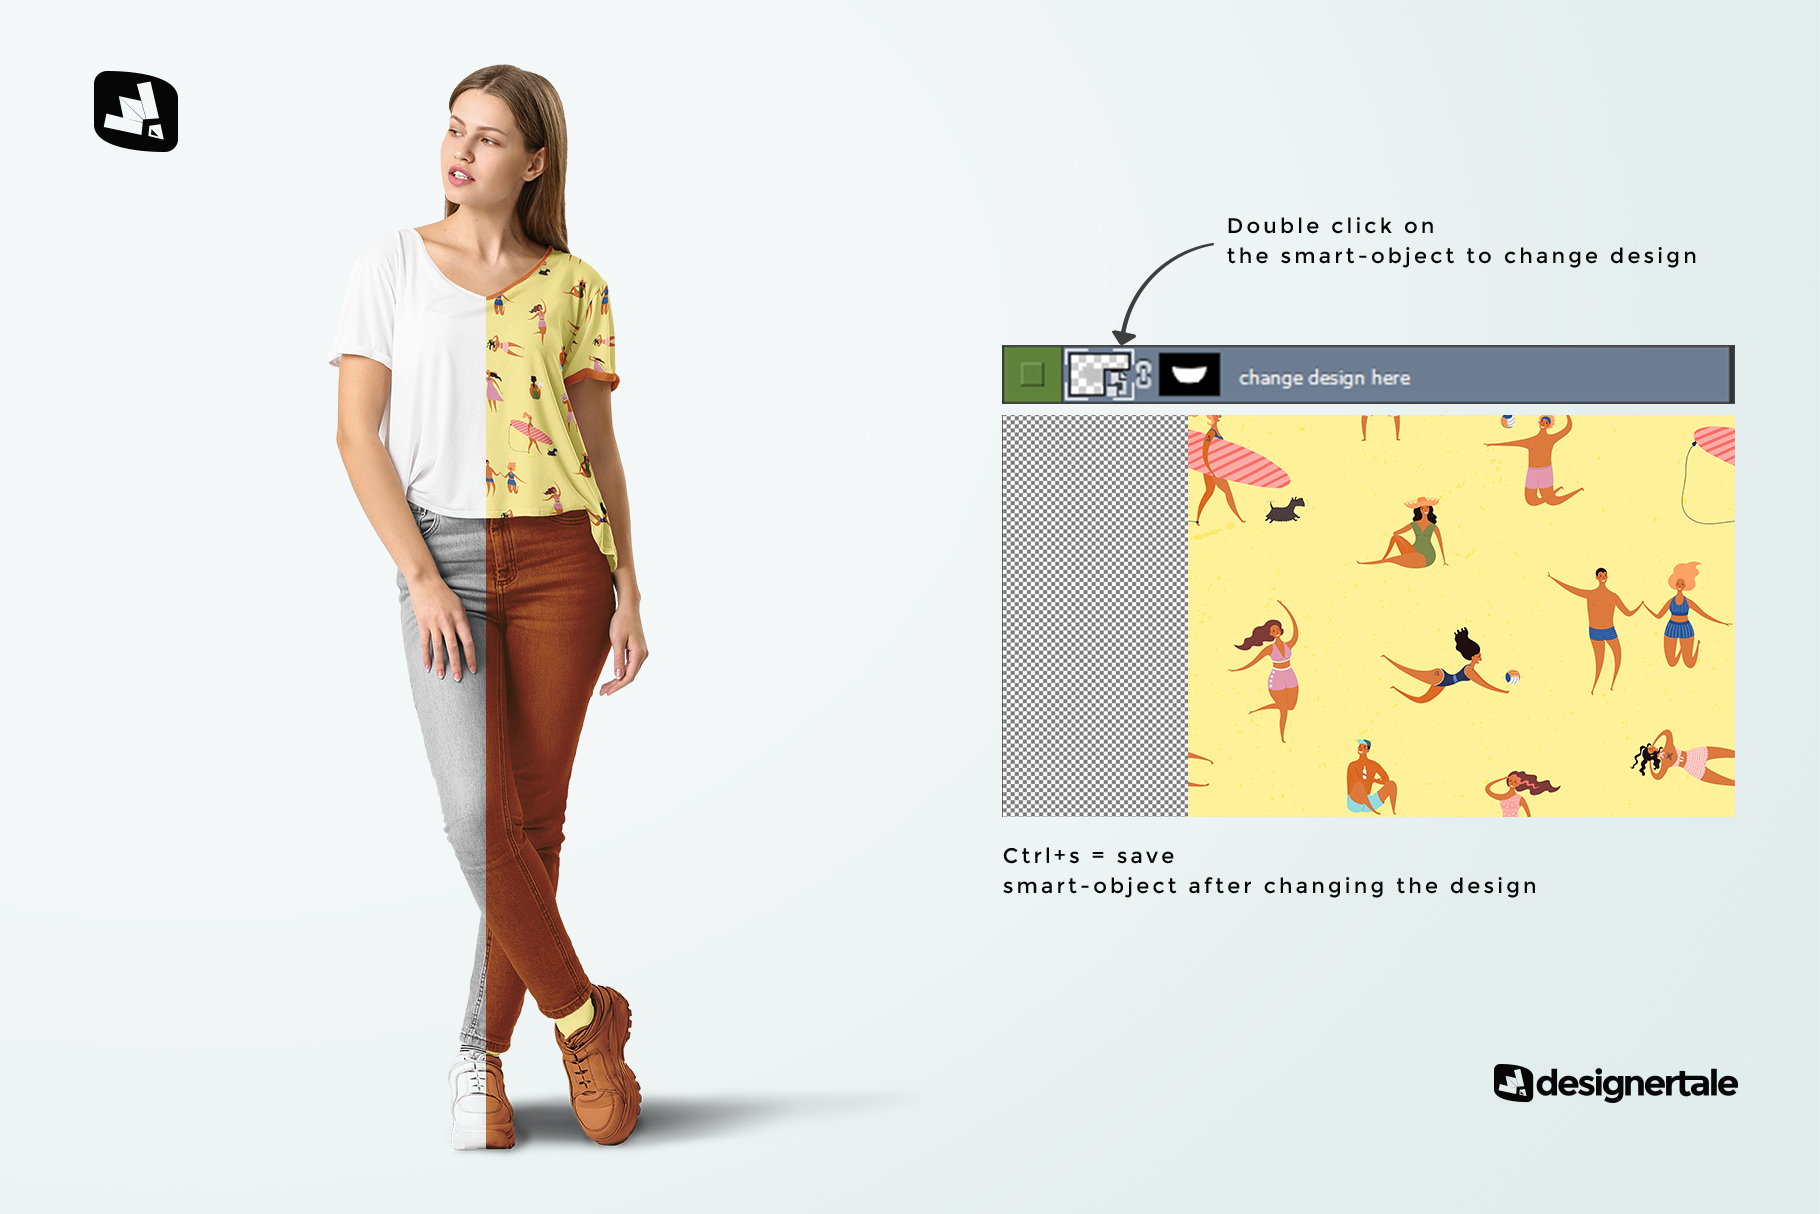 how to change design of the casual outfit with female model mockup